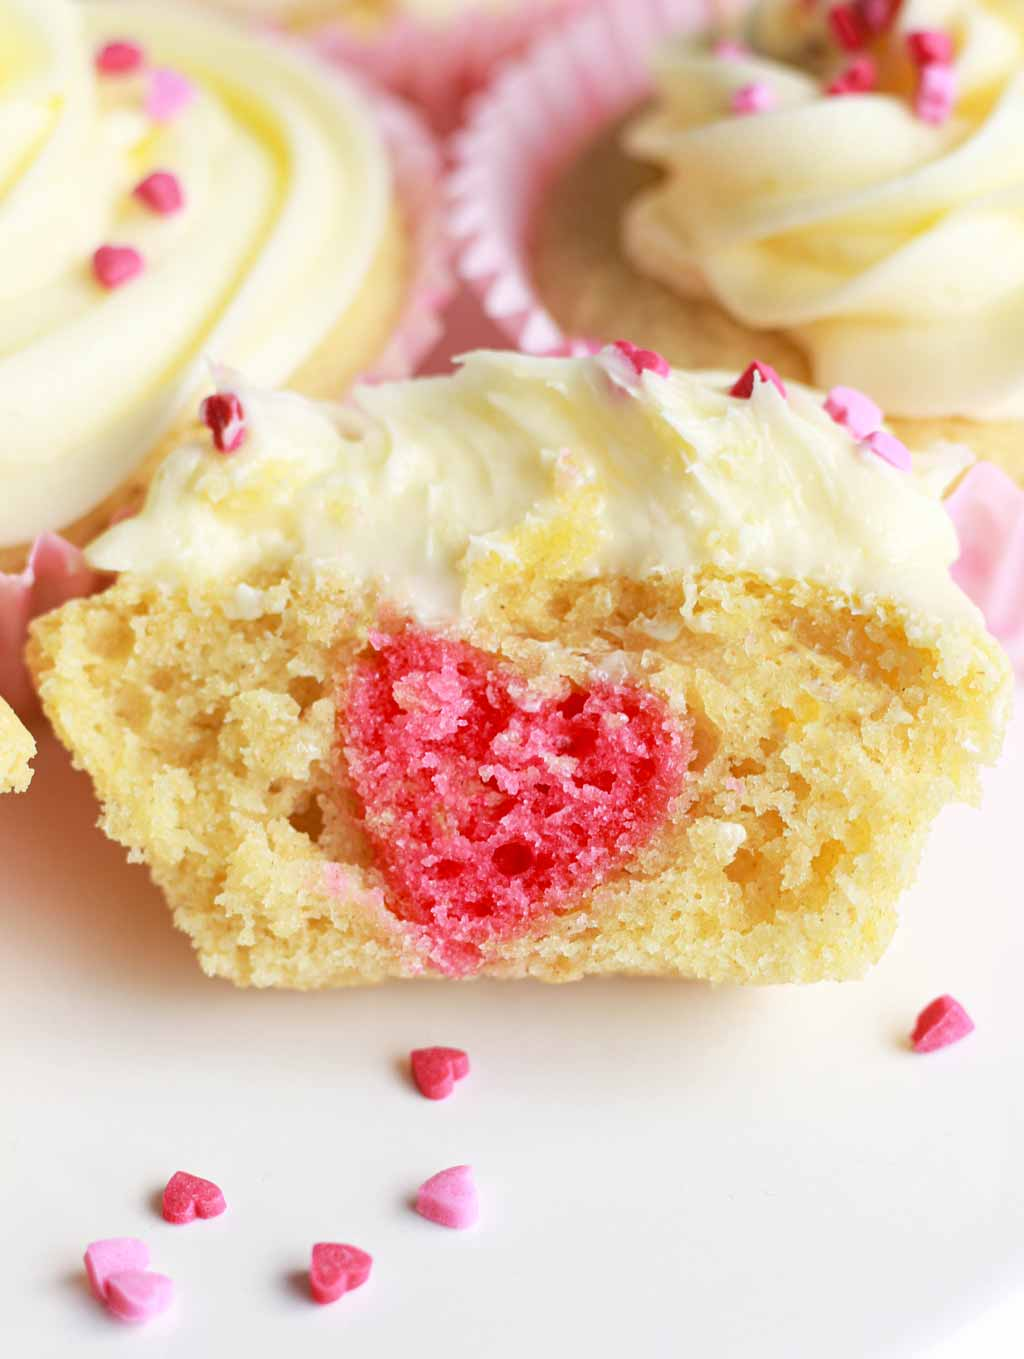 Pink Love Heart Showing Inside Of Cupcakes